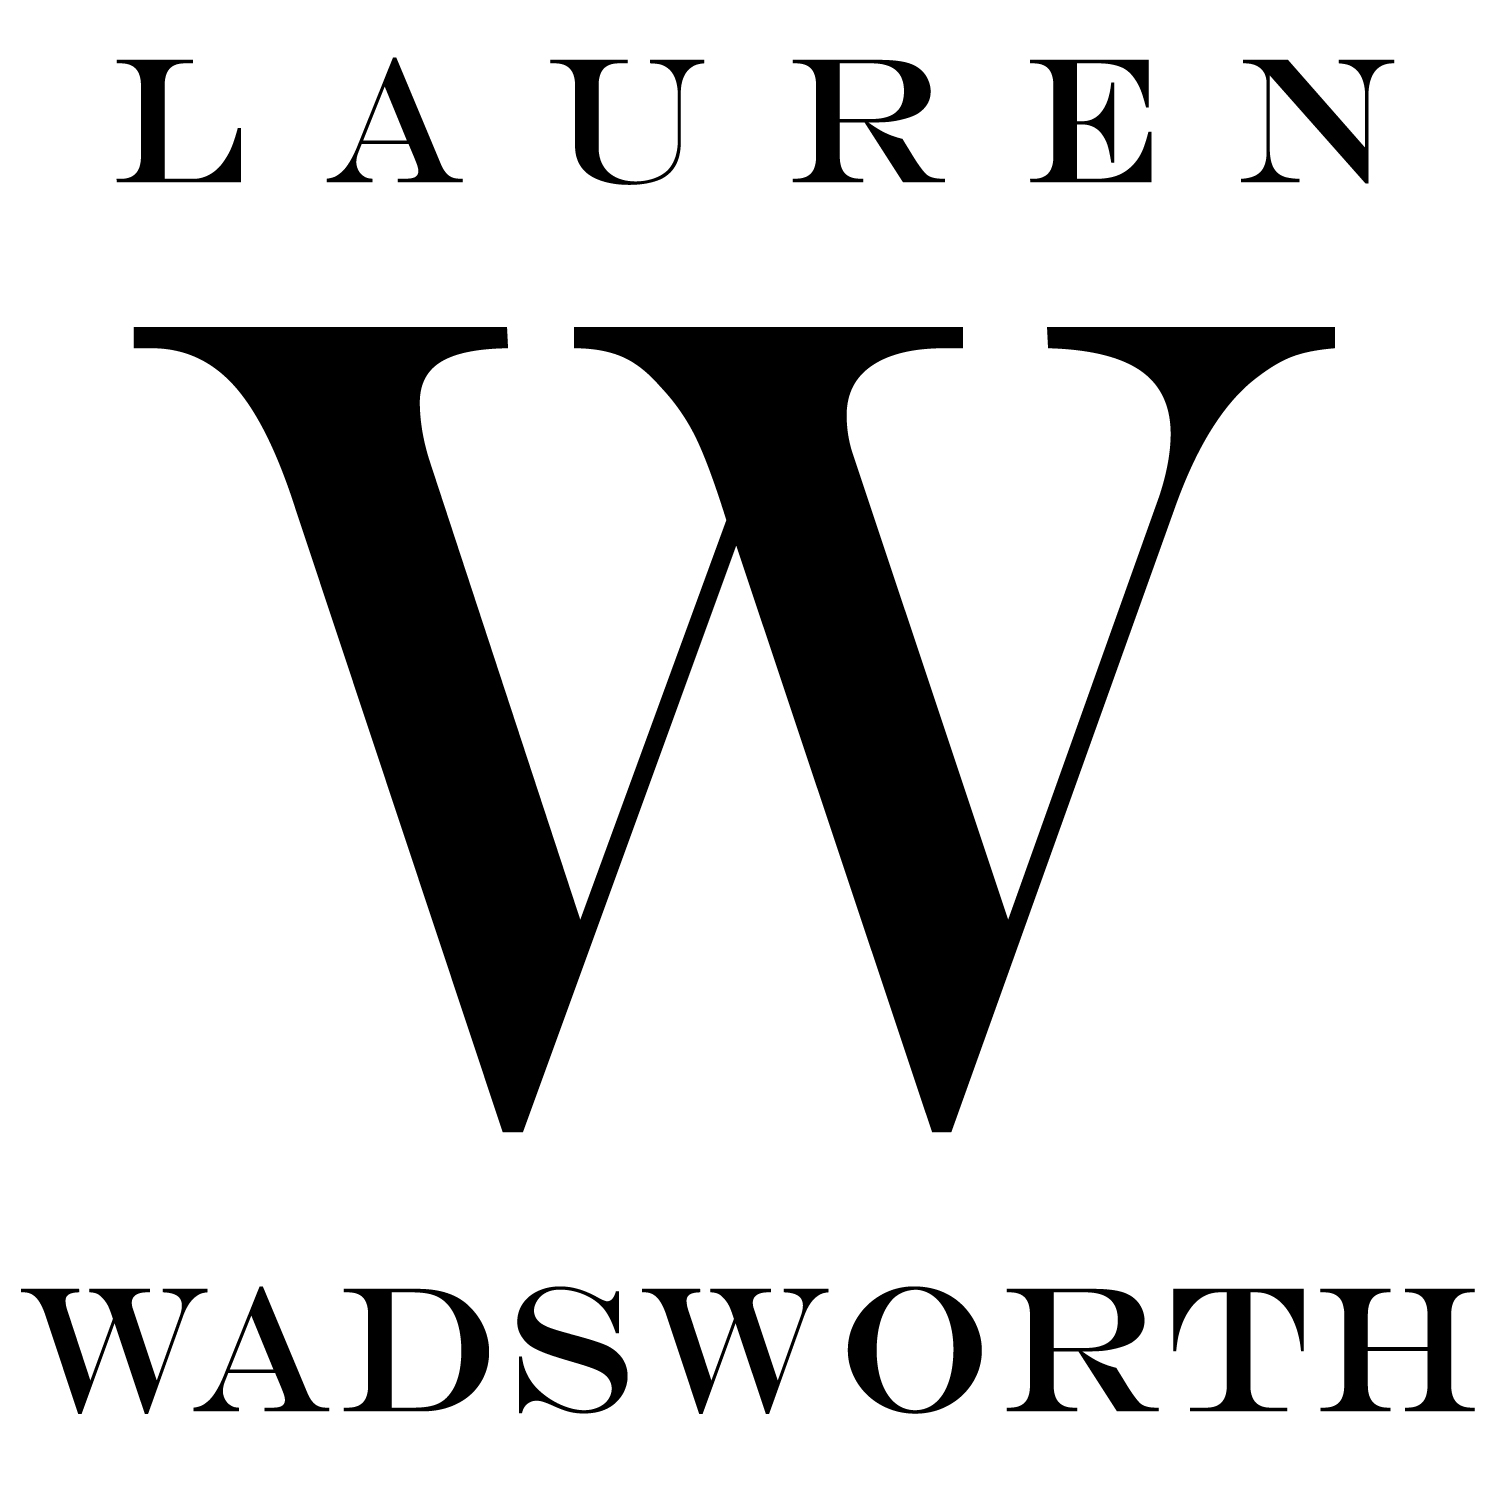 LAUREN WADSWORTH